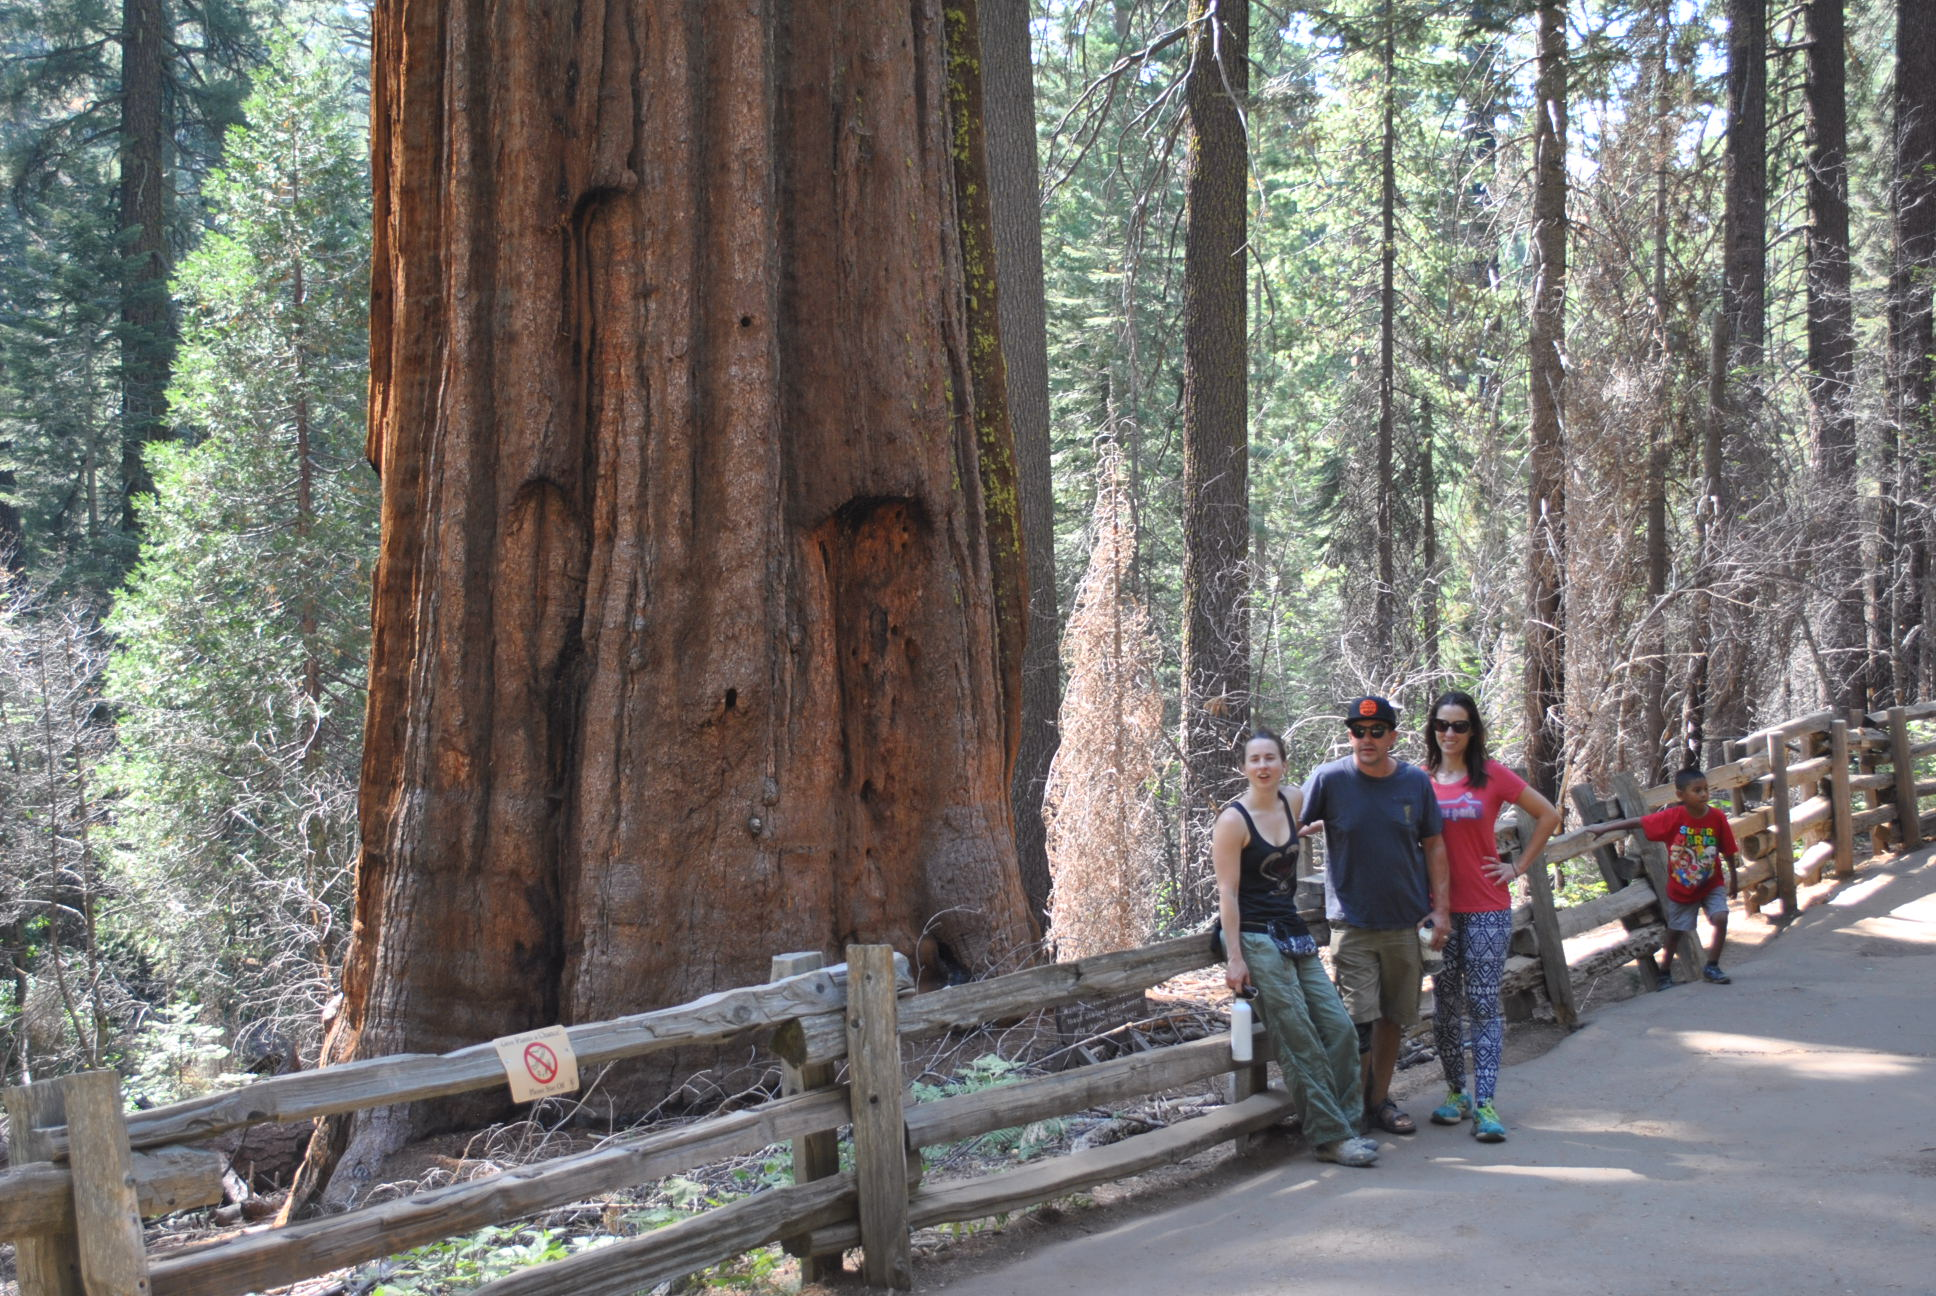 The call this giant sequoia Big Red. Im like, I've seen bigger and redder. nice try though.